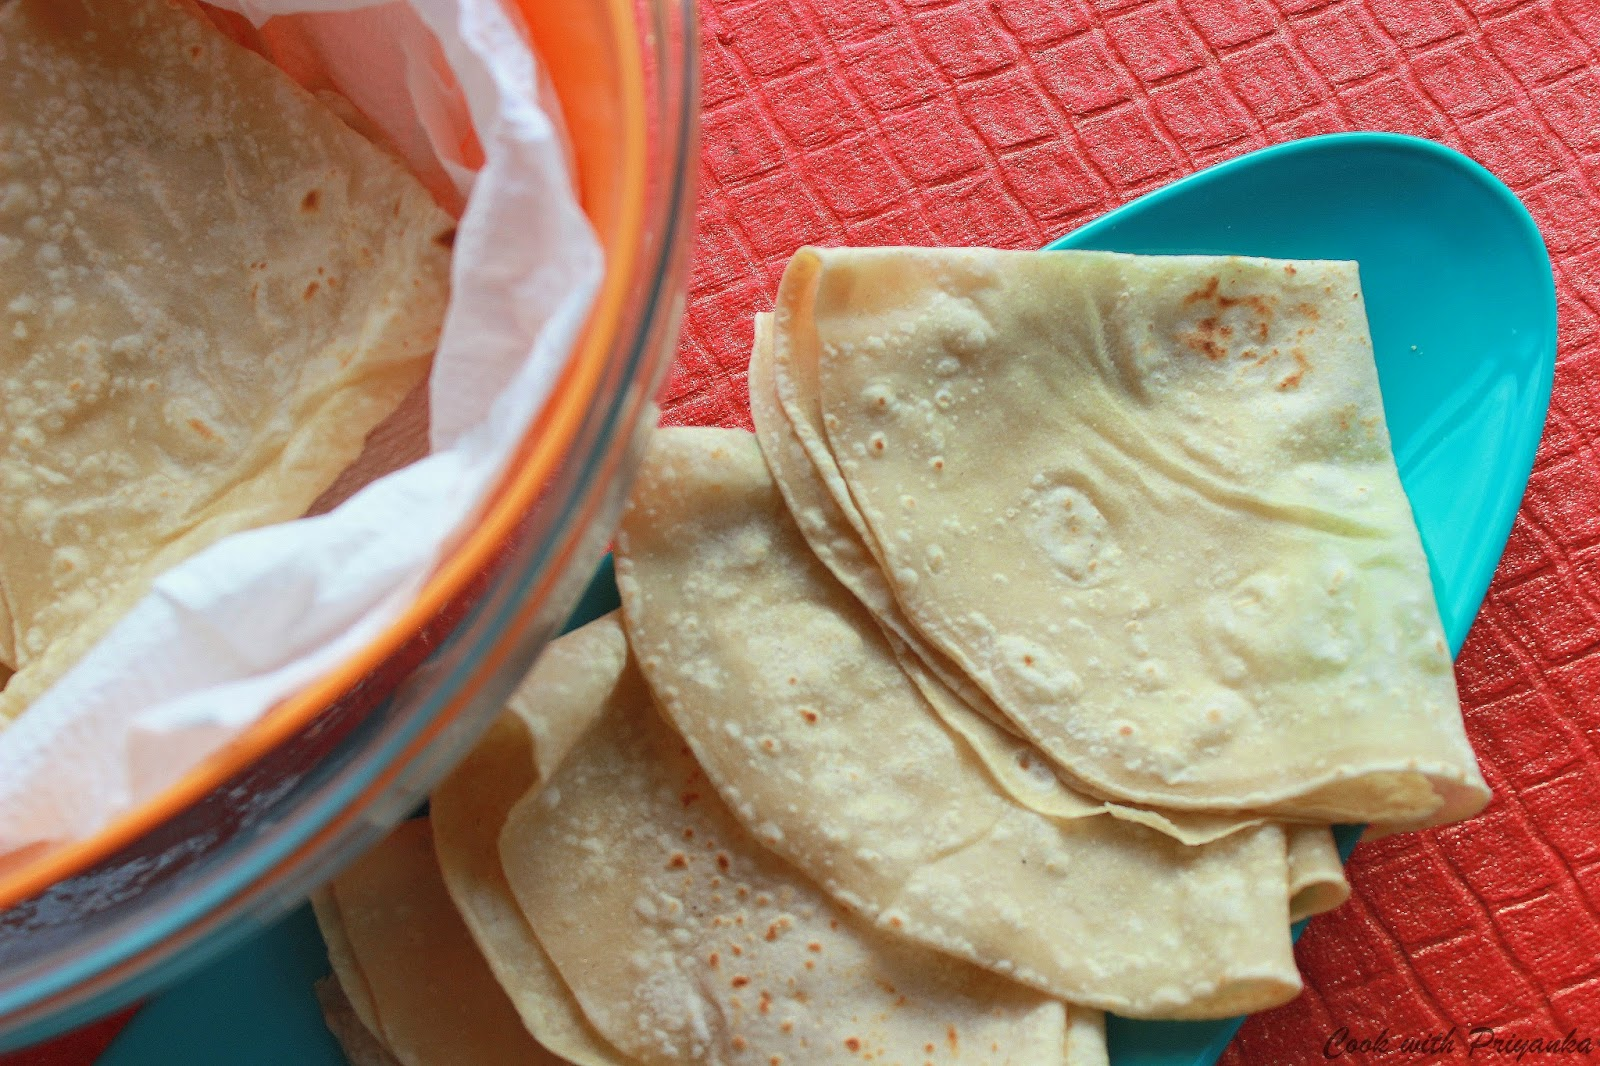 http://cookwithpriyankavarma.blogspot.co.uk/2014/06/rumali-roti-thin-flatbread.html